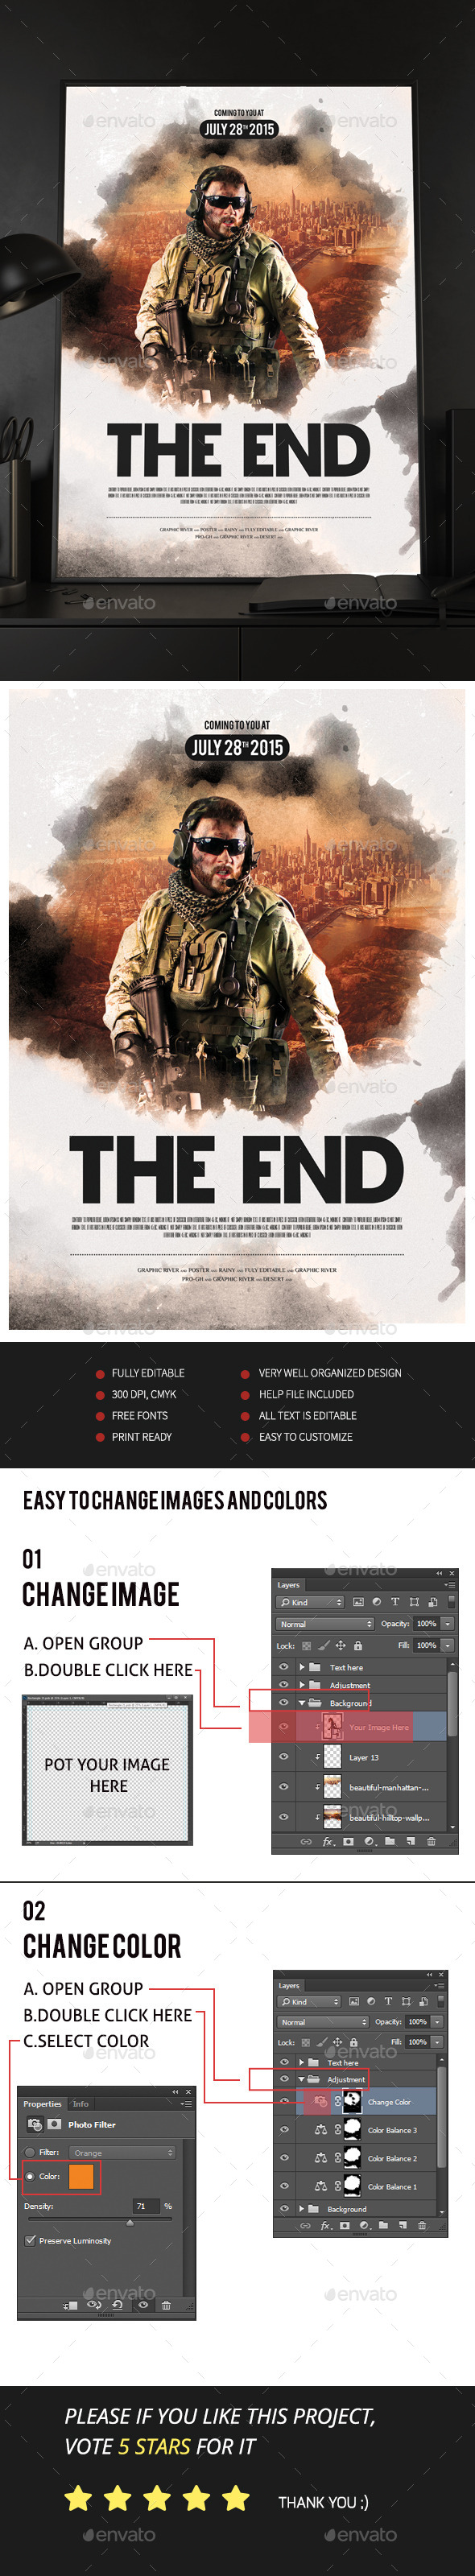 The End Movie Poster/Flyer - Events Flyers